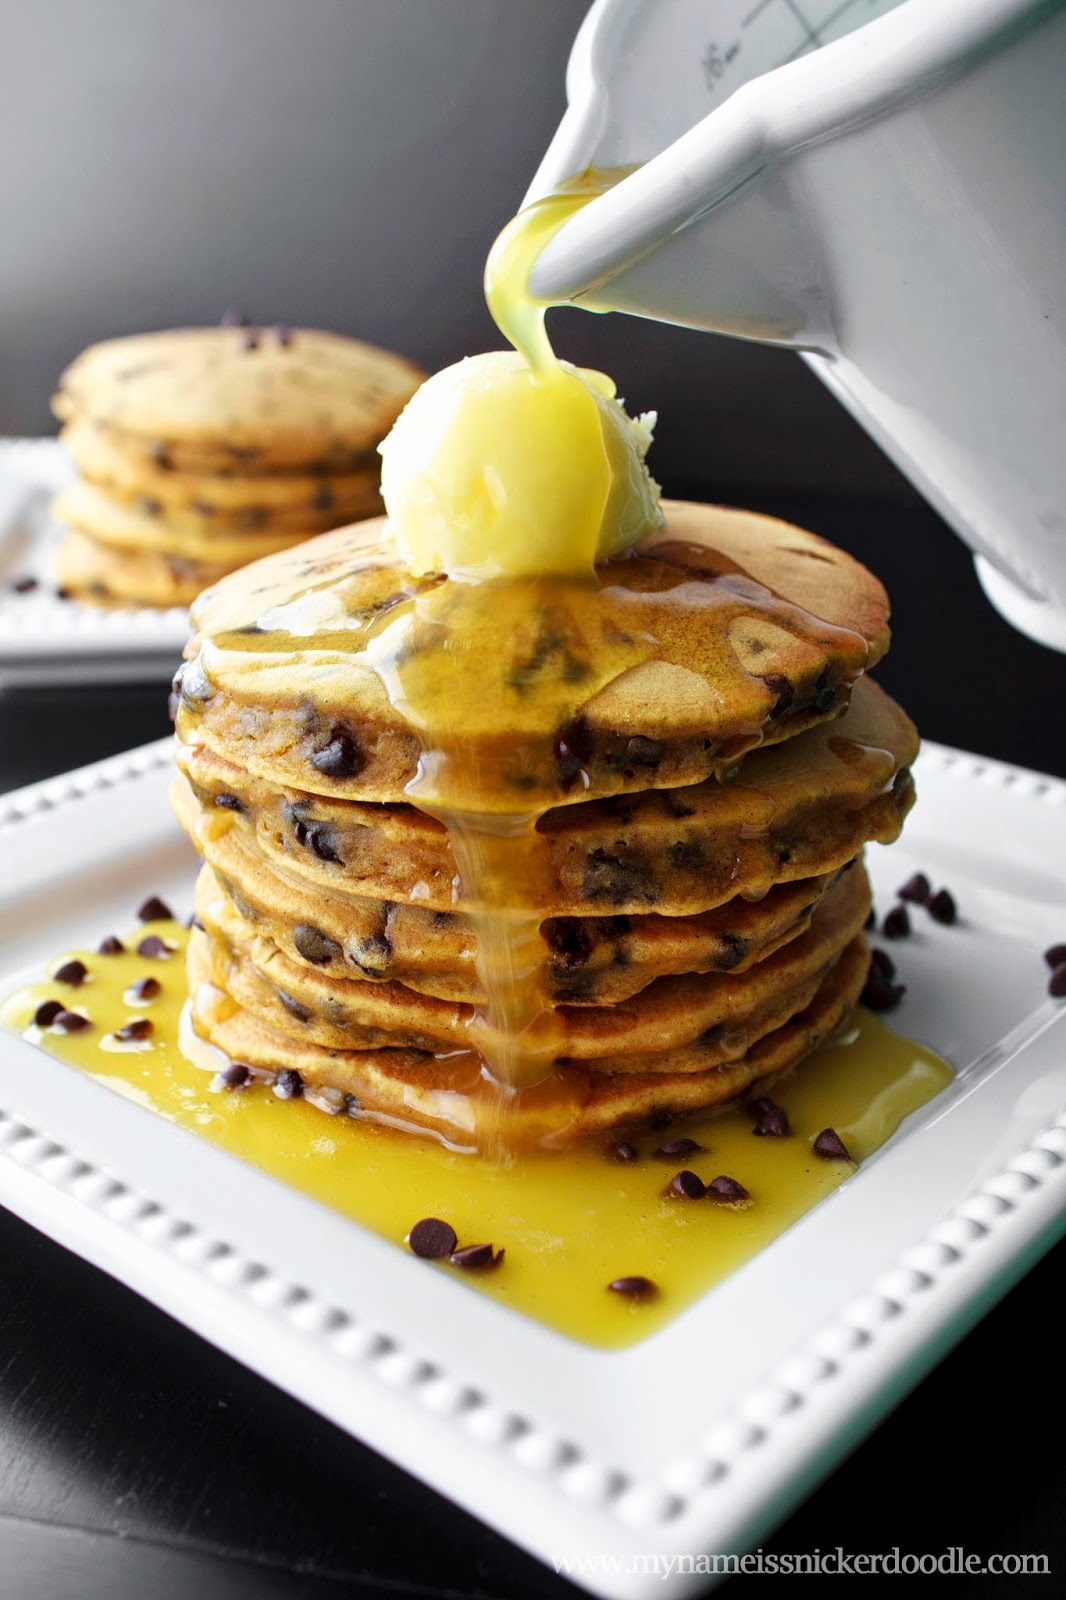 Pumpkin Chocolate Chip Pancakes with an Orange Buttermilk Sauce | My Name Is Snickerdoodle